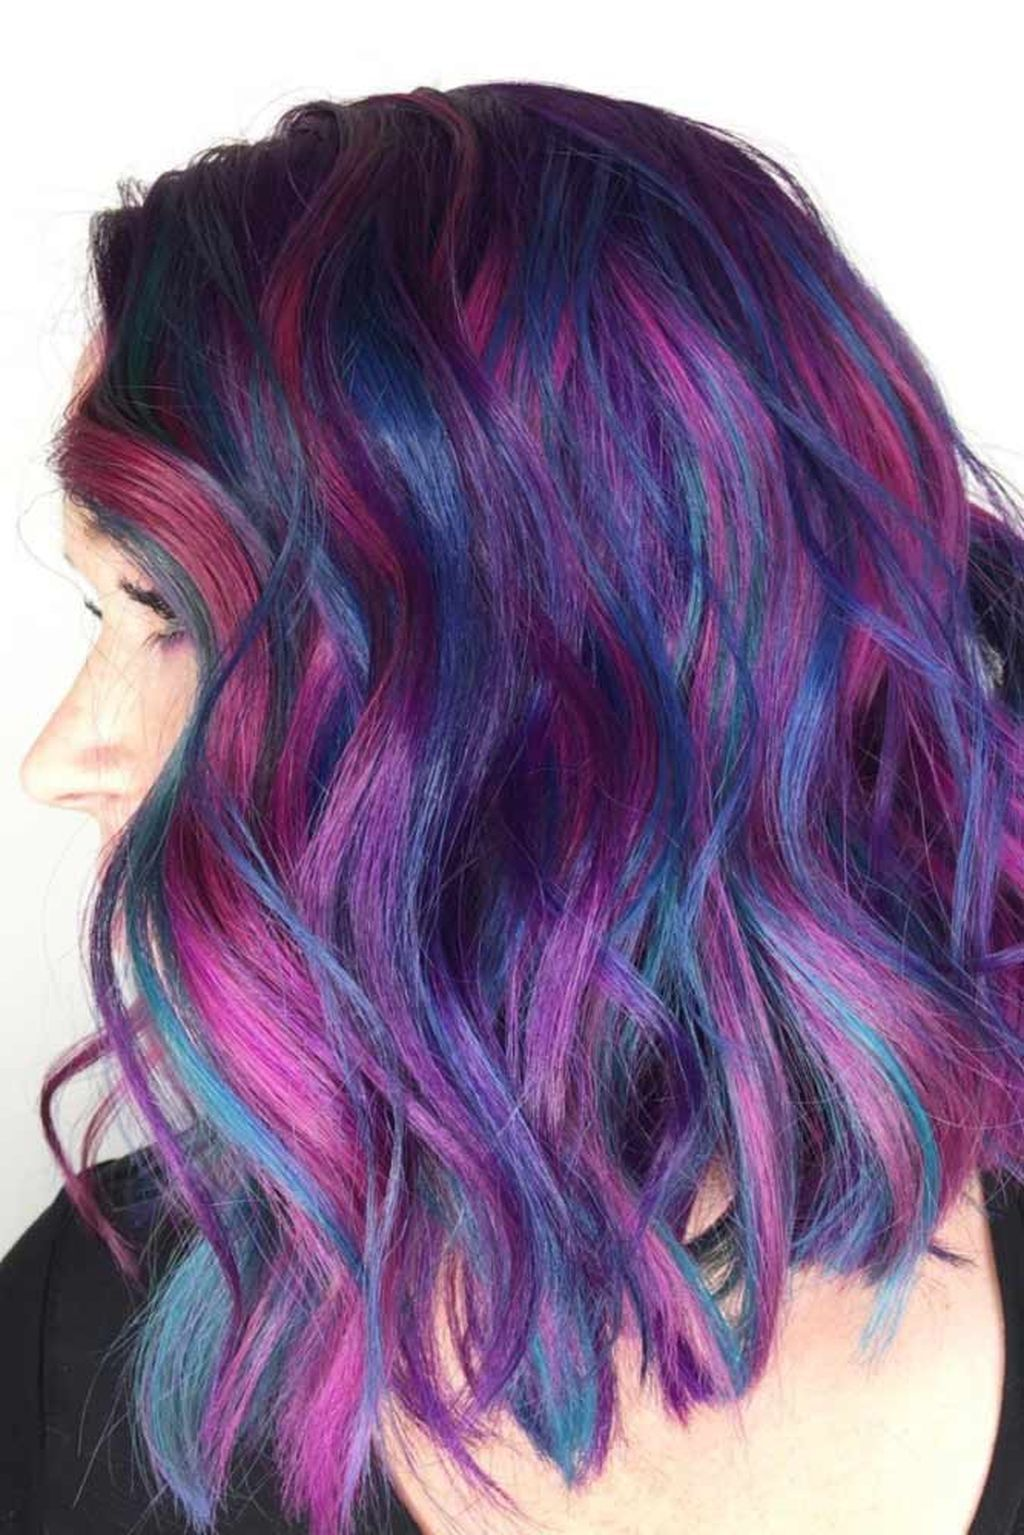 Inspiring Bold Ombre Hair Colors Ideas Trend 2018 13